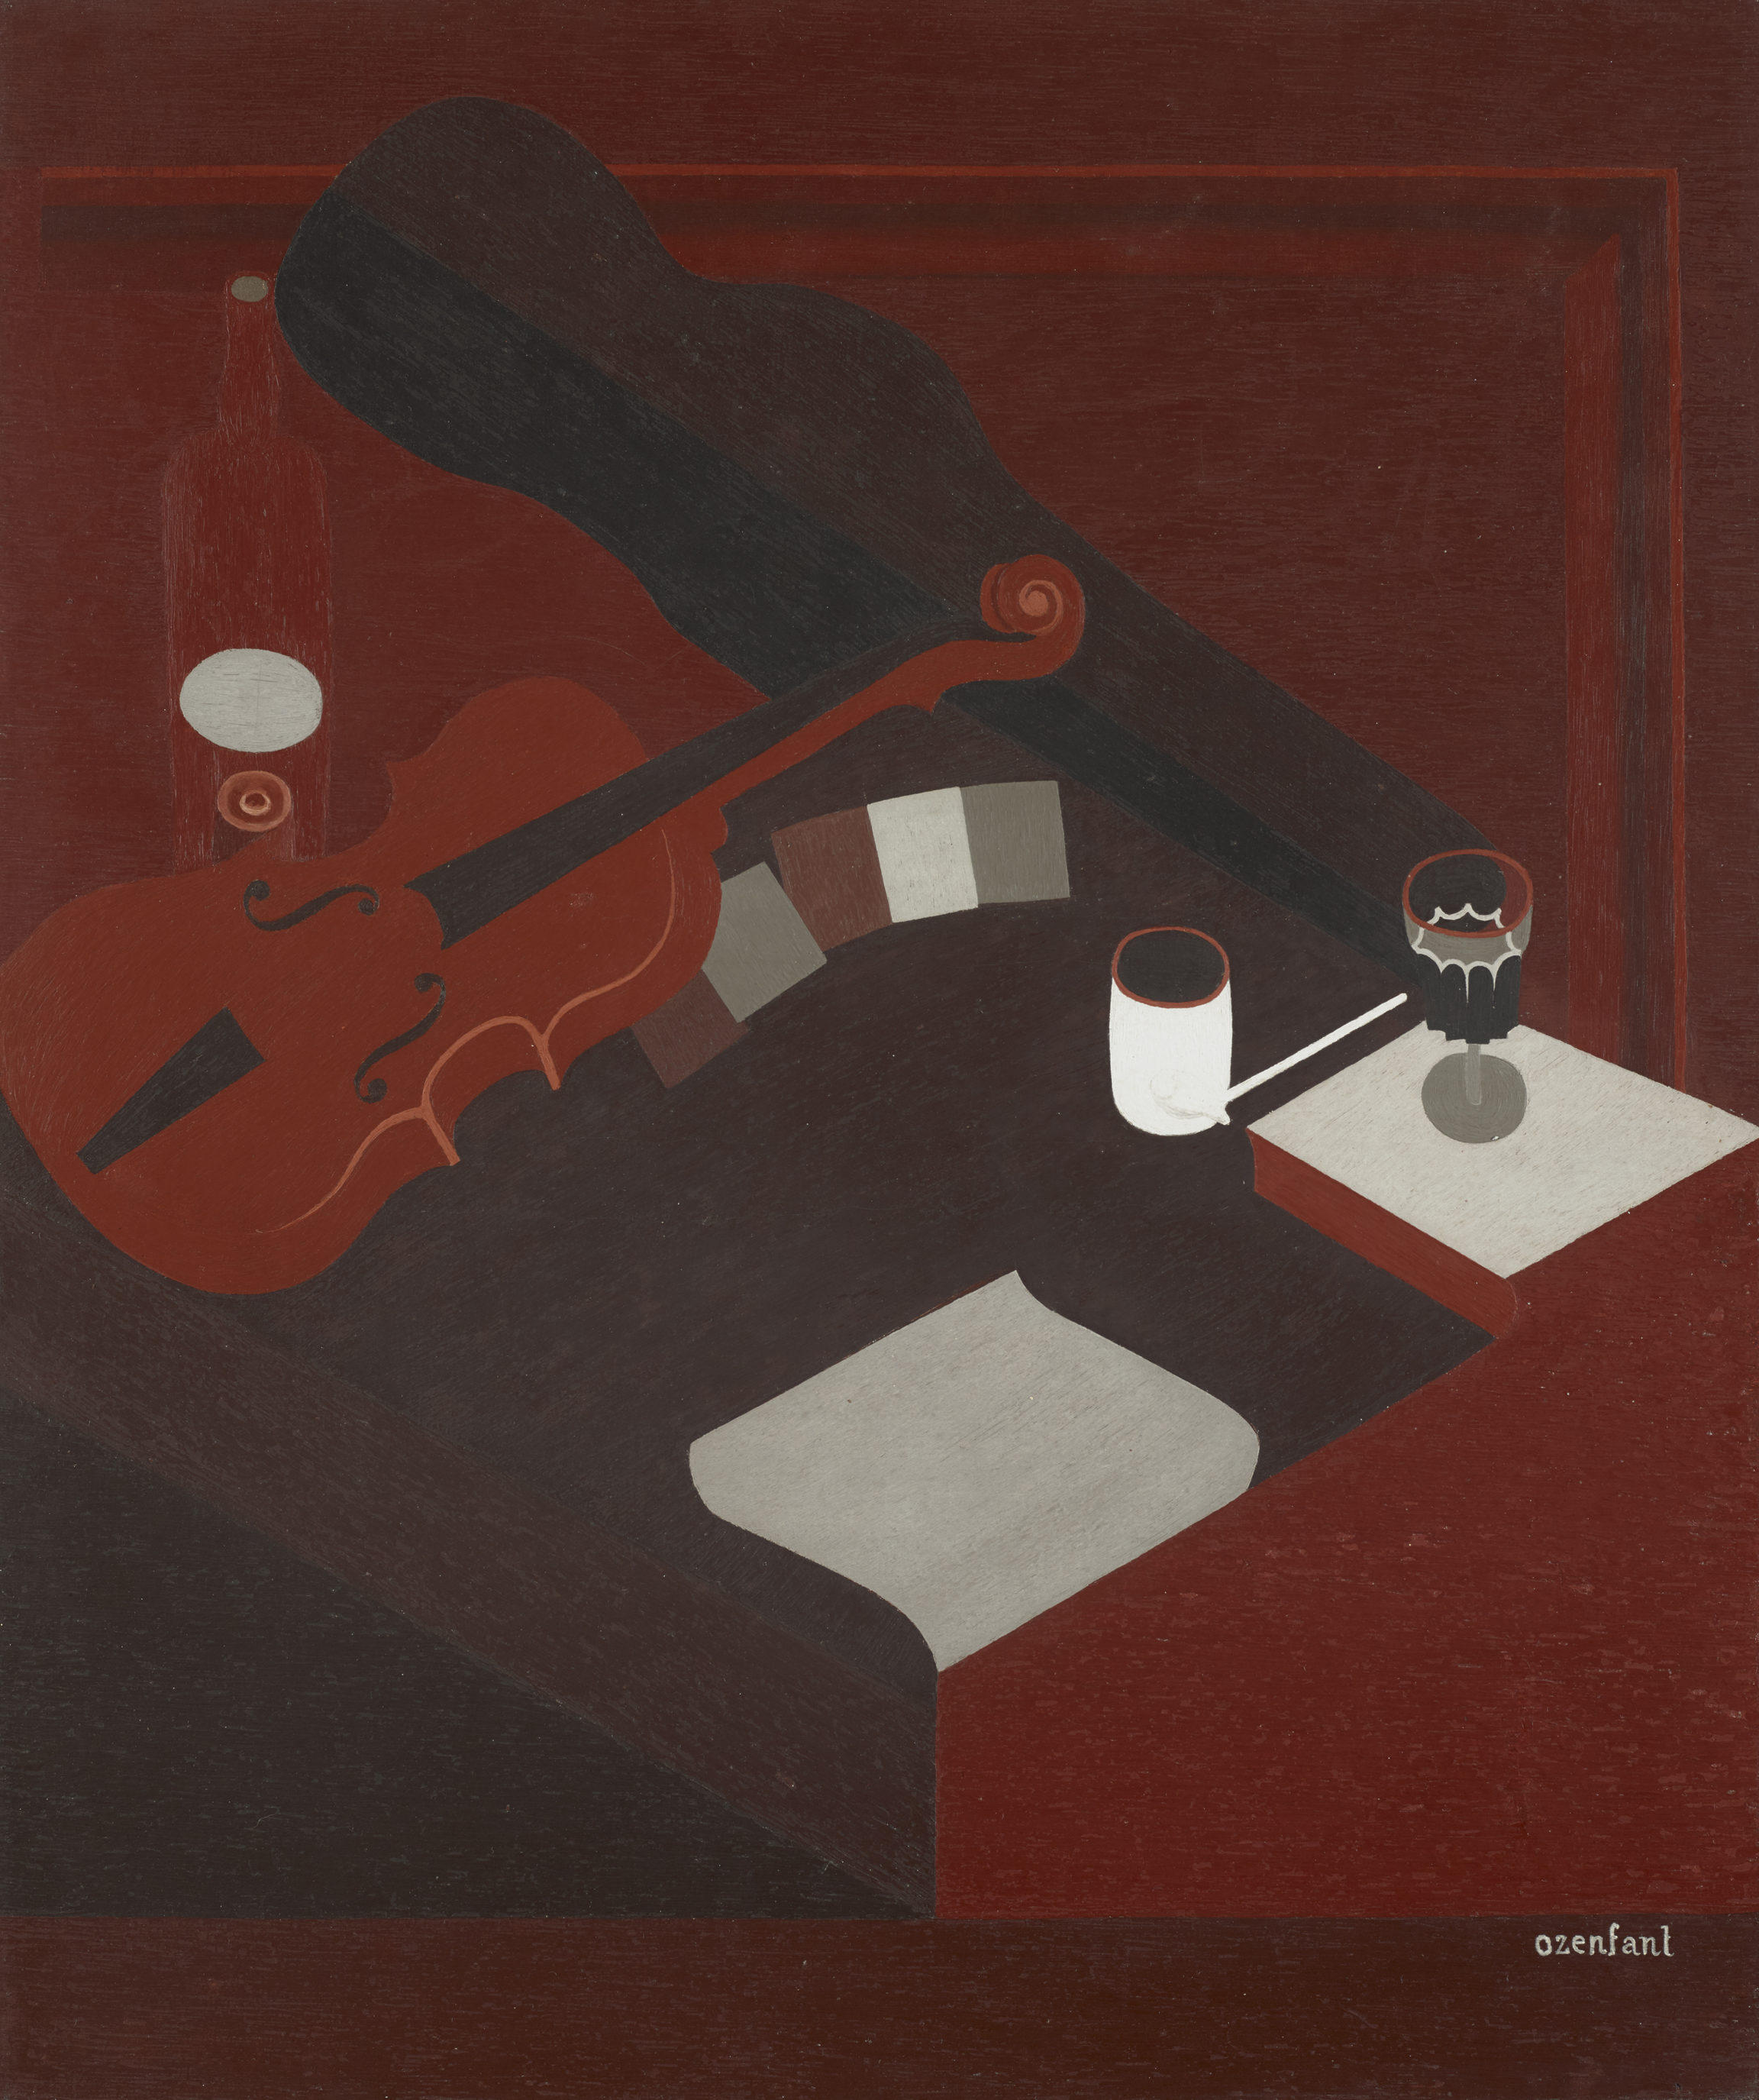 Amédée Ozenfant, Le violon rouge (The Red Violin), 1919 - 1929